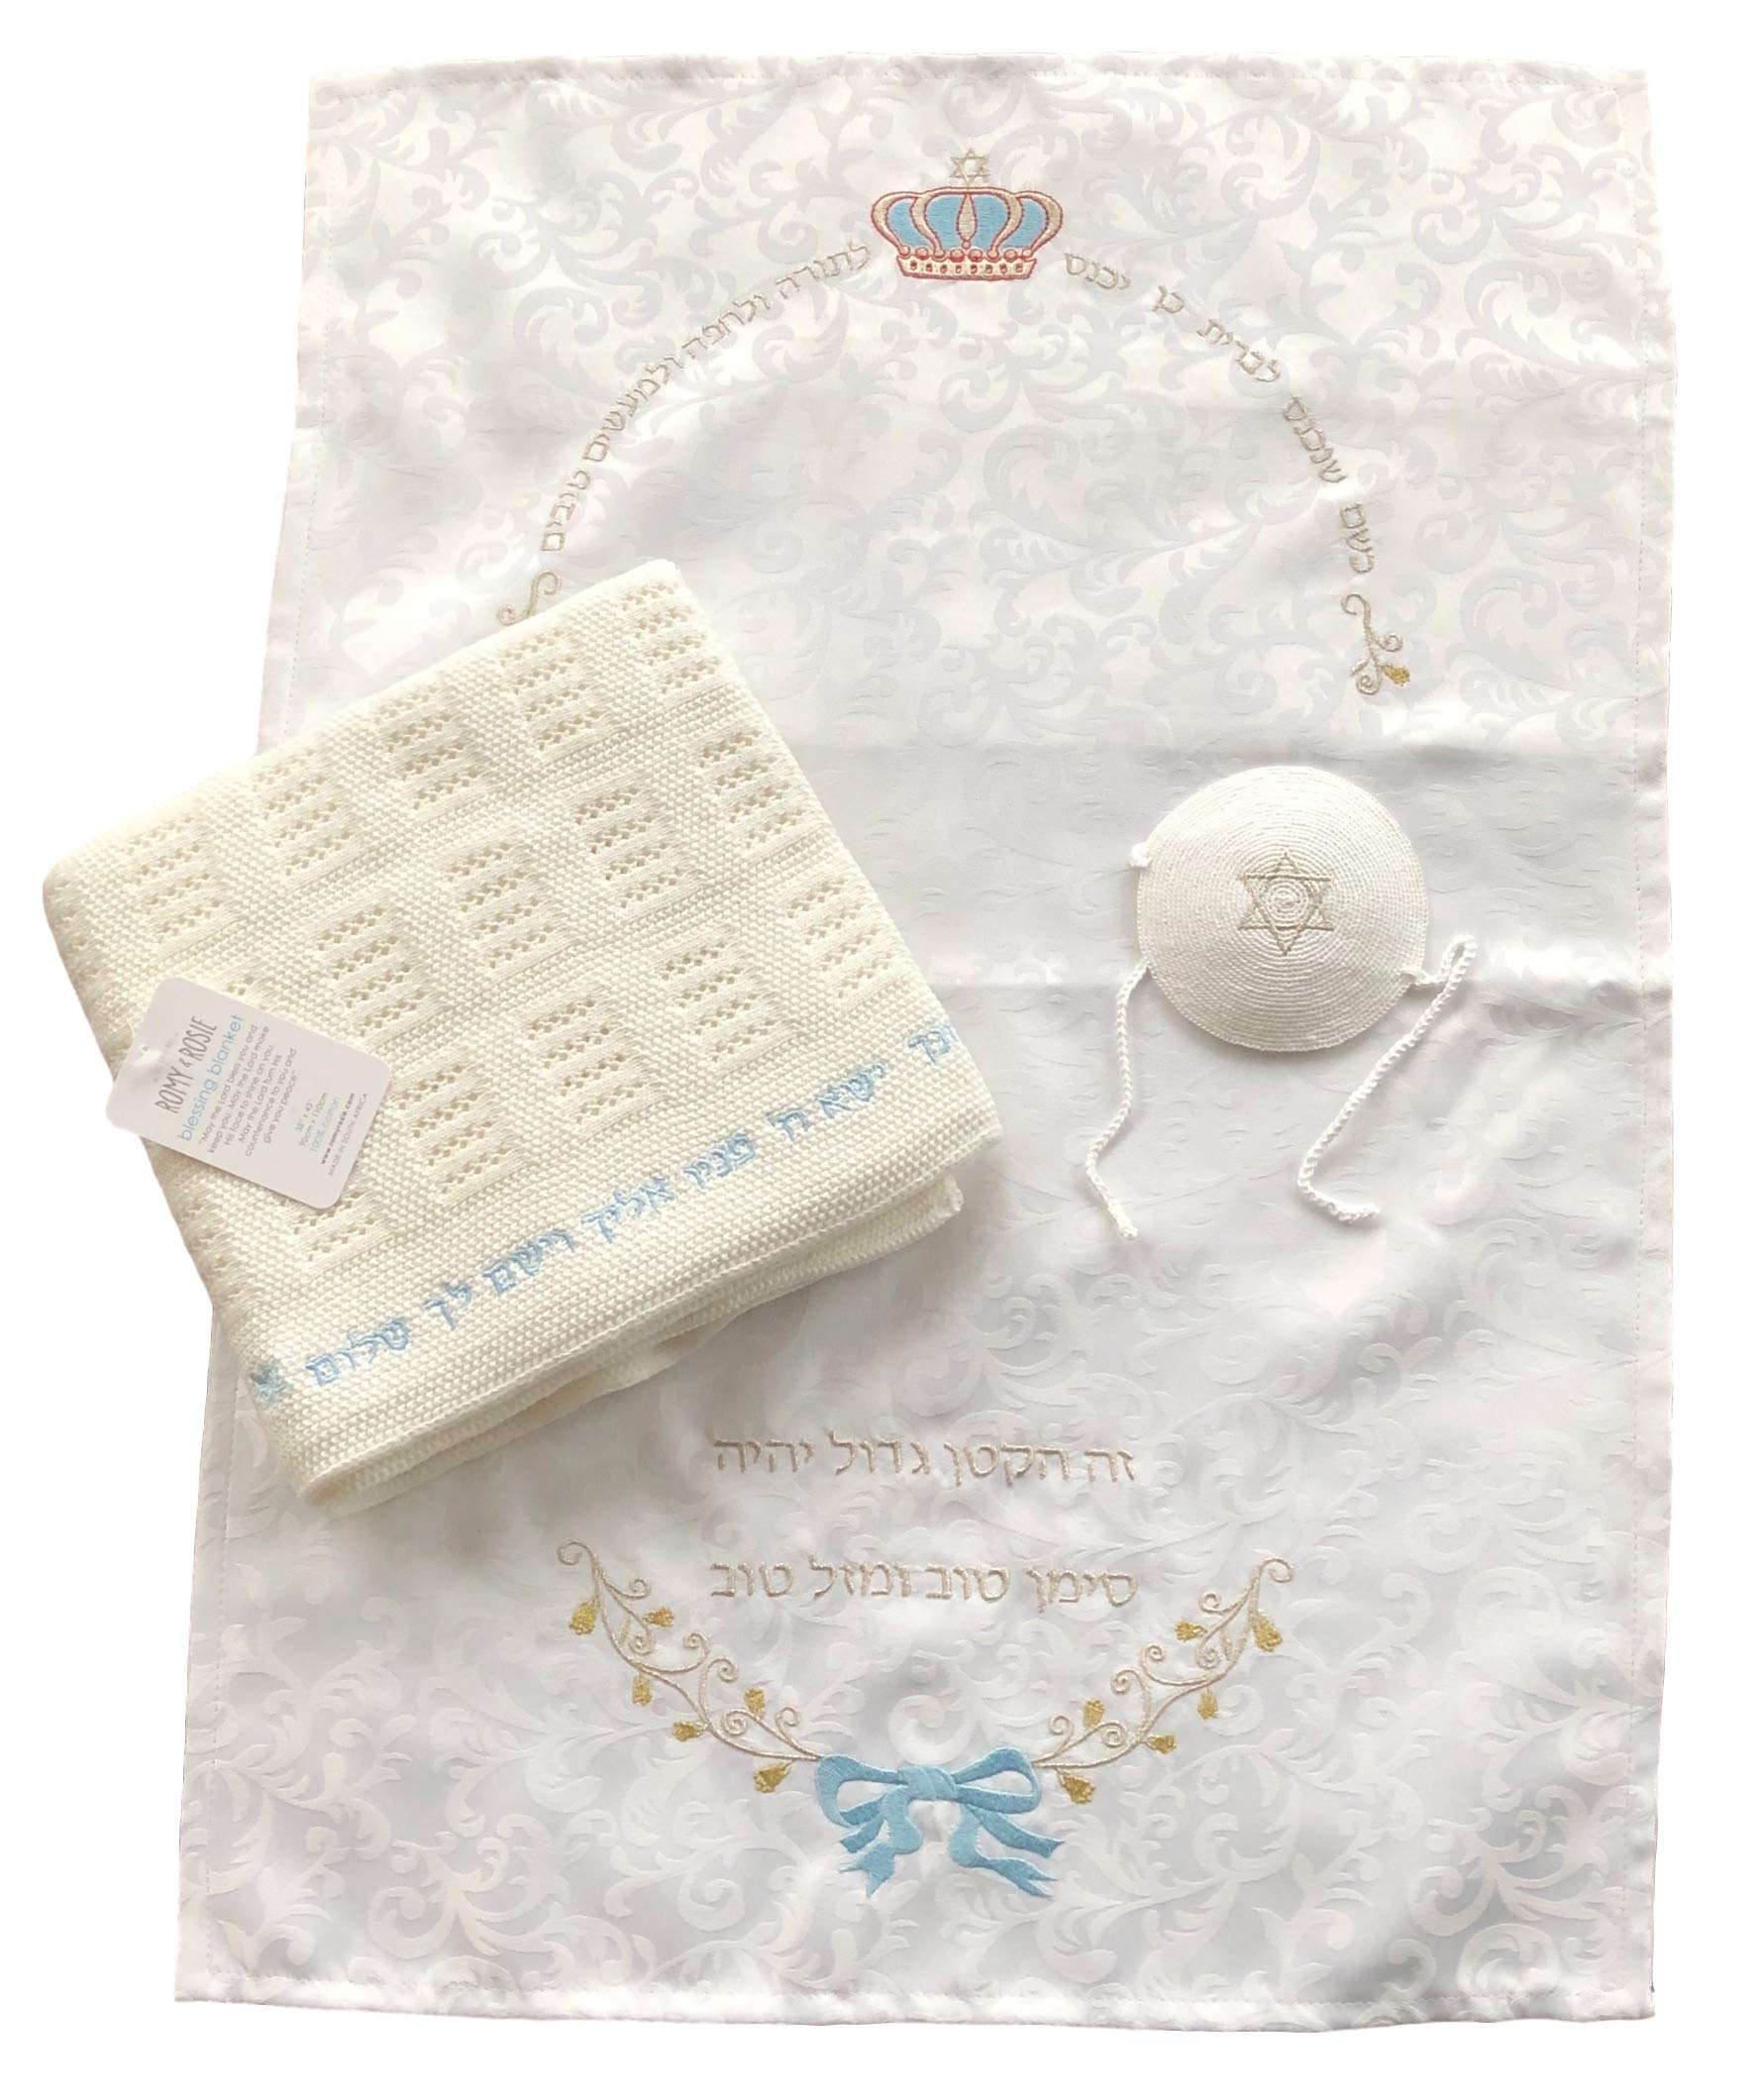 Brit Milah Set - Pillowcase, Blanket and Yarmulke (White with Aqua) by Romy and Rosie